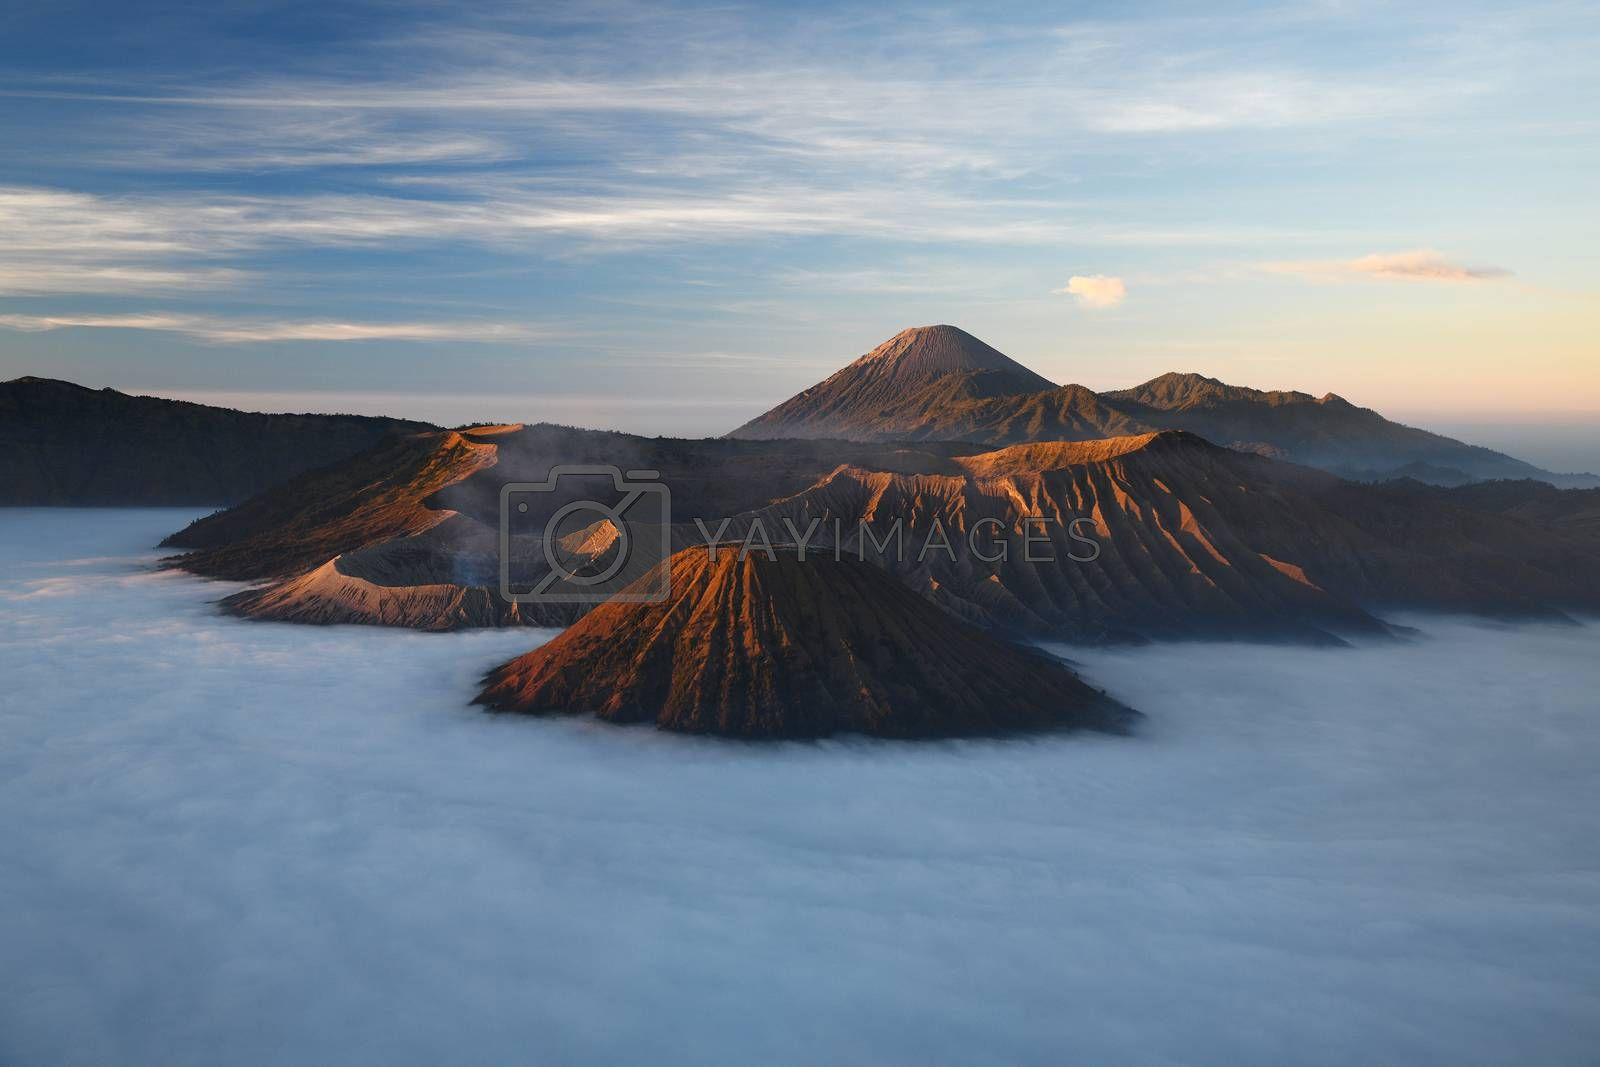 Royalty free image of Bromo mountain with fog layer at sunrise, East Java, Indonesia by porbital